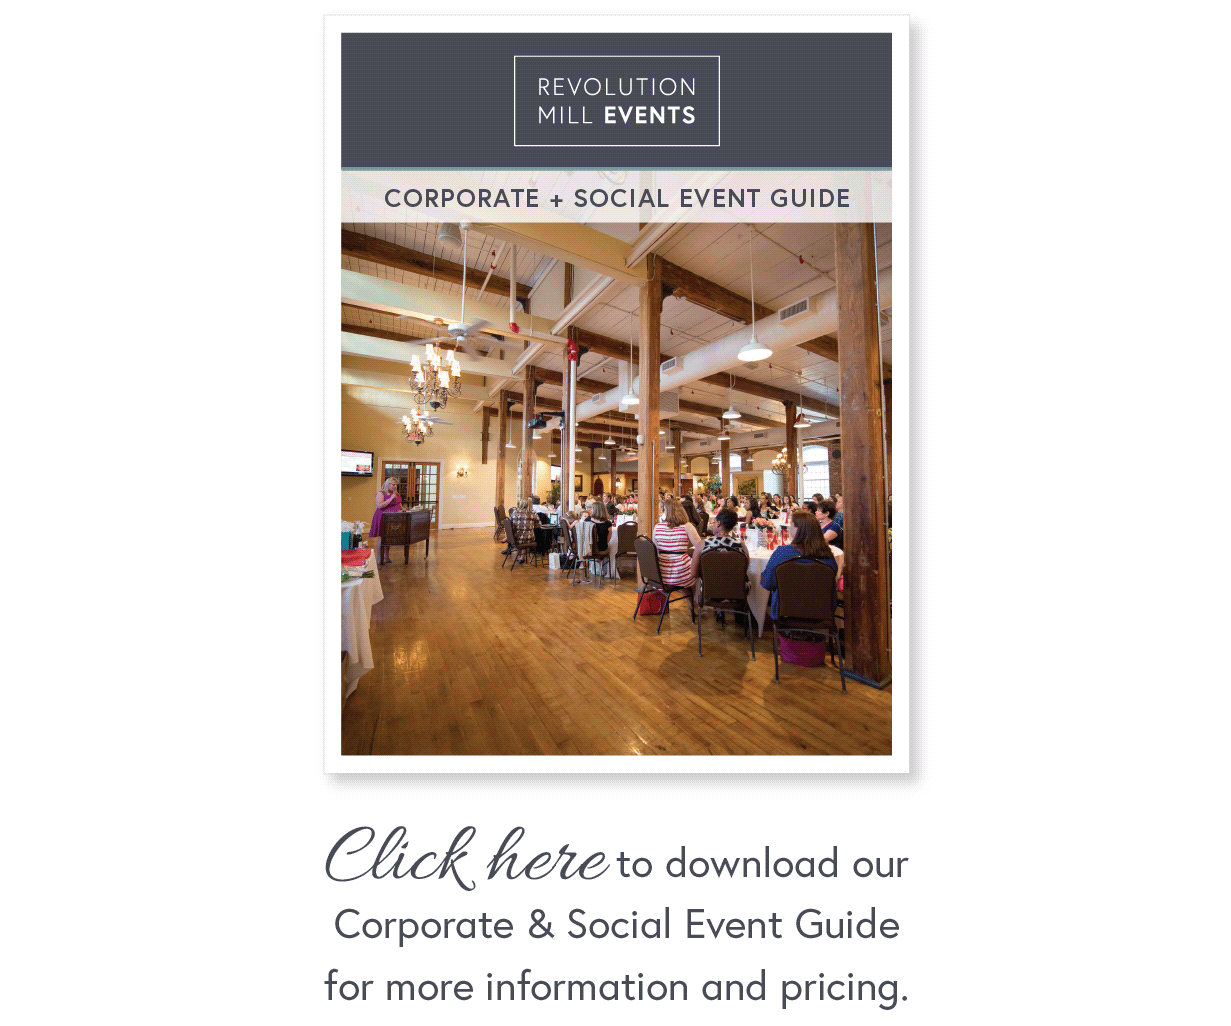 Corporate Event Guide Download   |  Revolution Mill Events